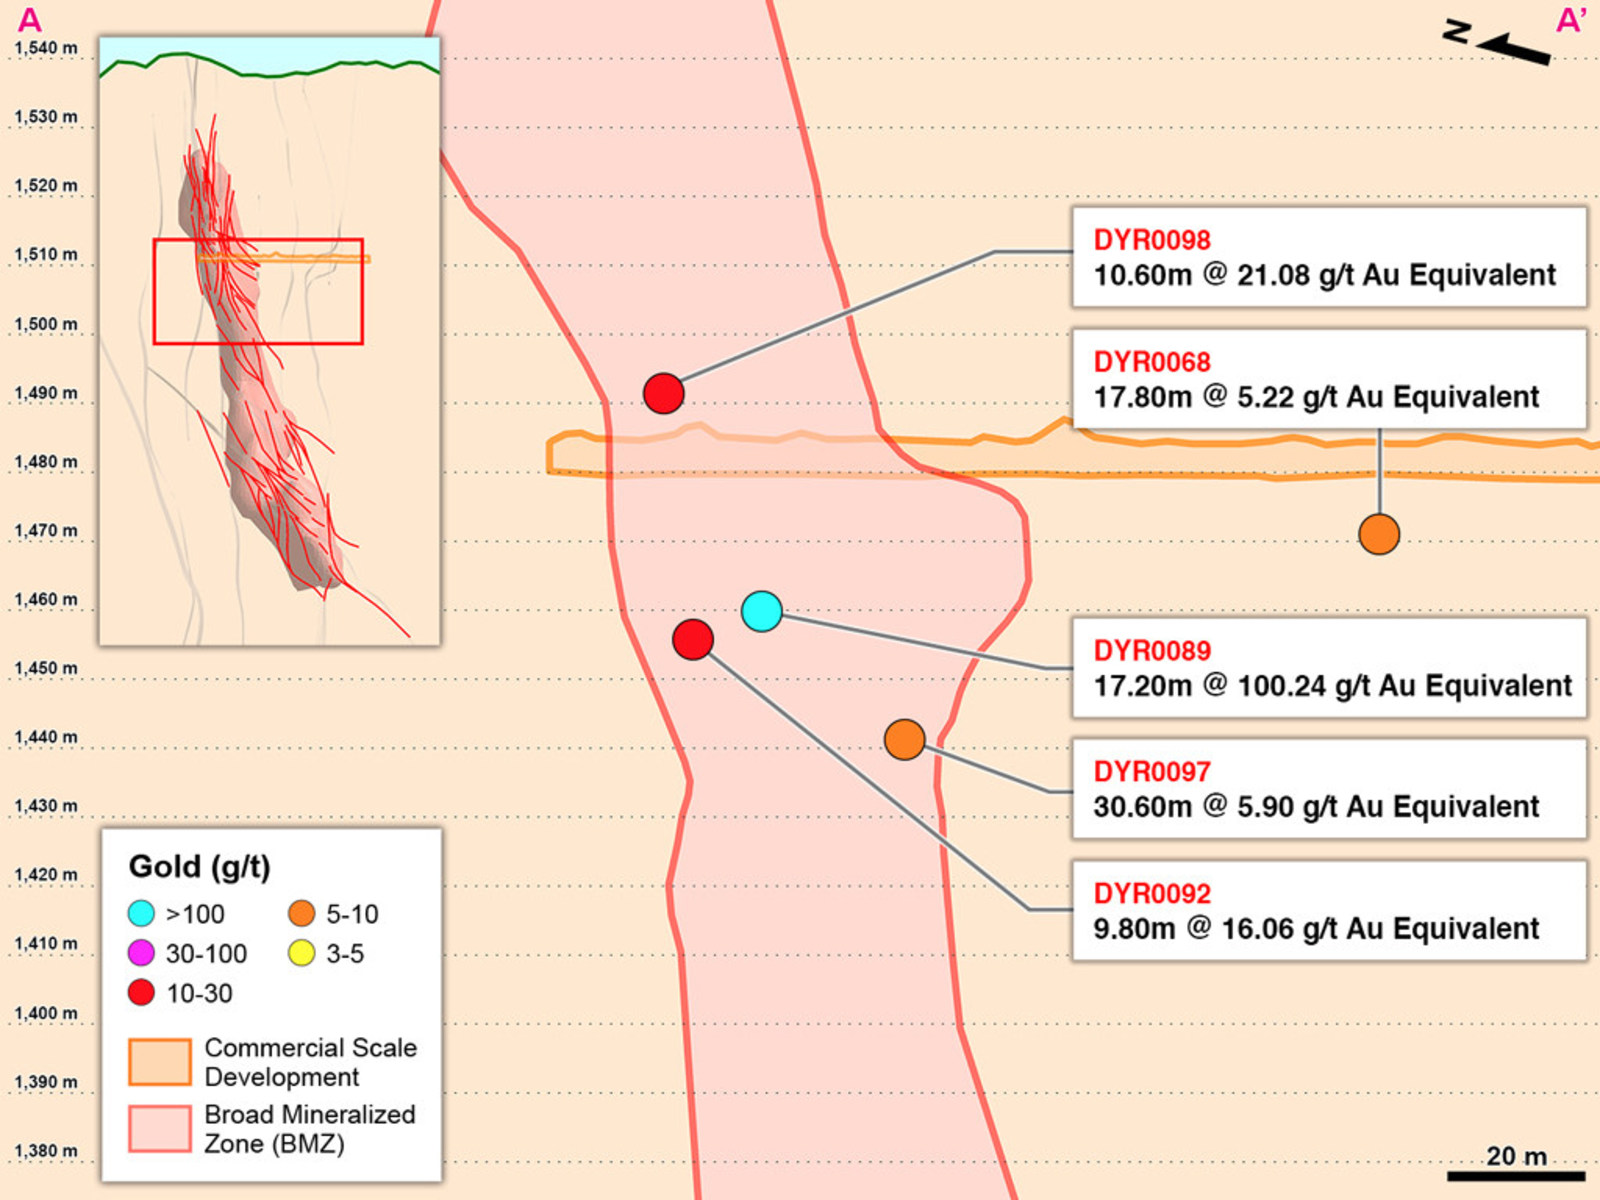 Figure 2 – Long Section A-A' of Drilling into BMZ1 and Other Areas in the Yaraguá System